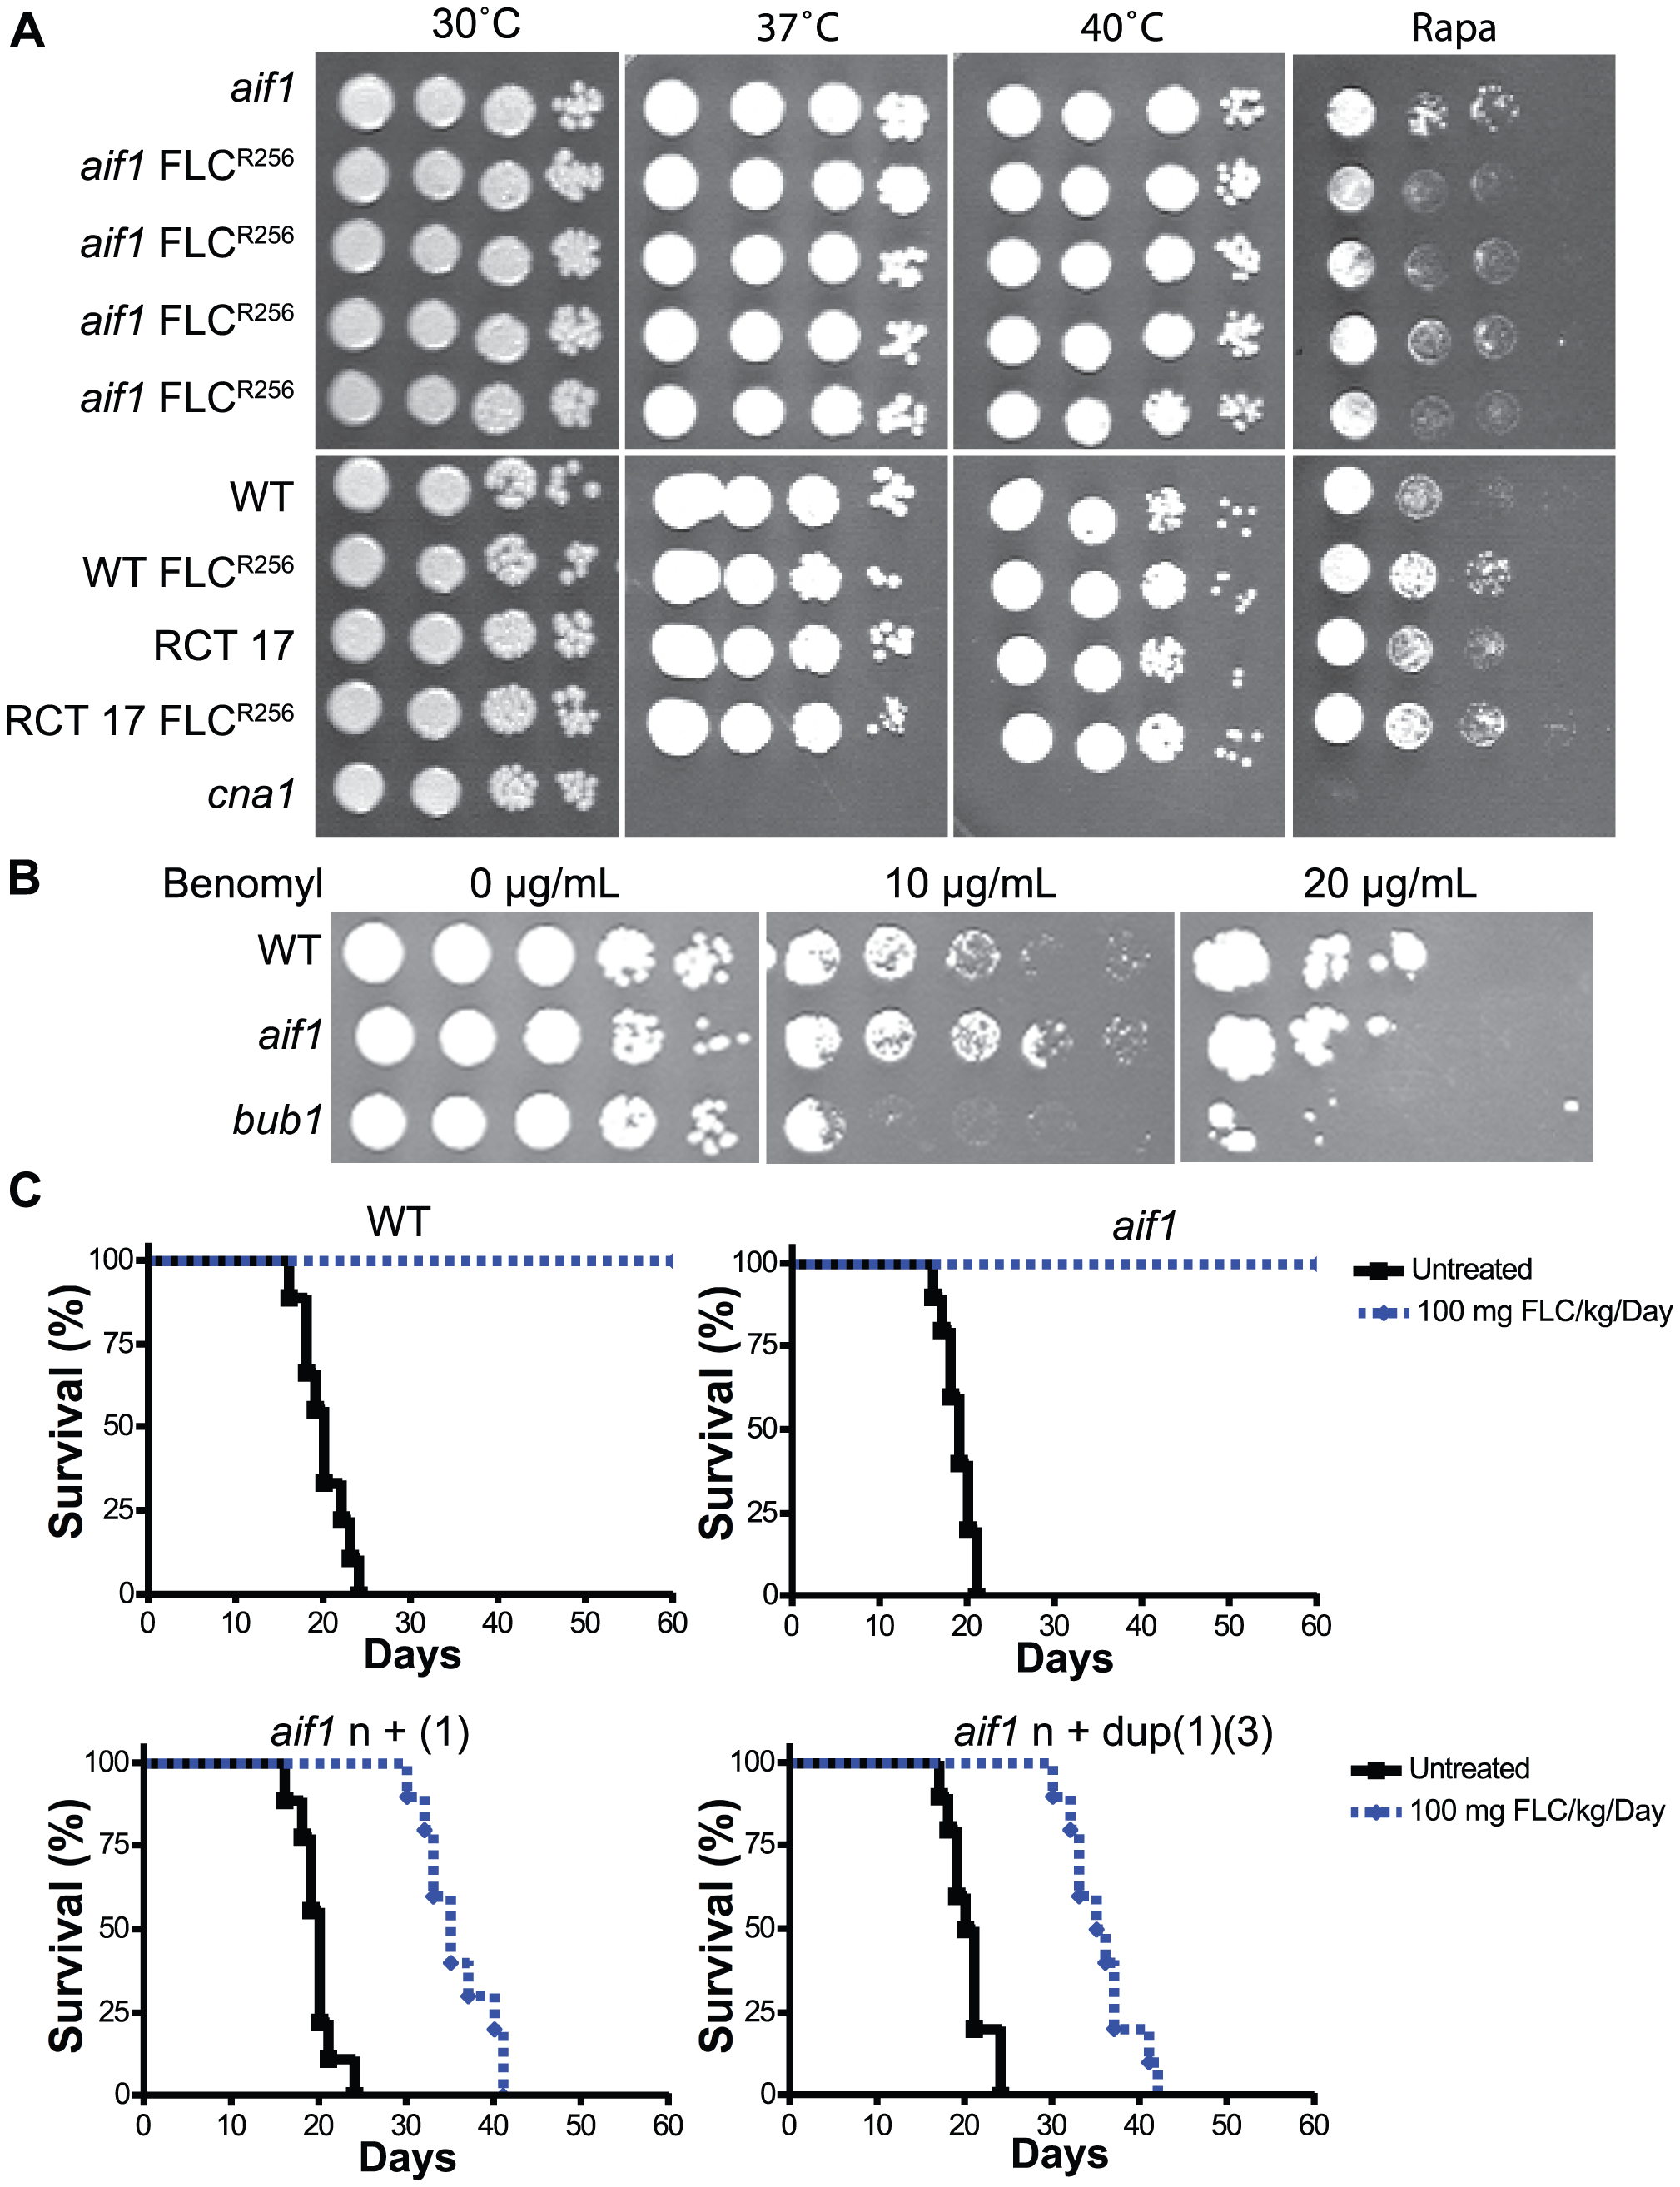 Fluconazole resistant aneuploid clones are stable and virulent. A